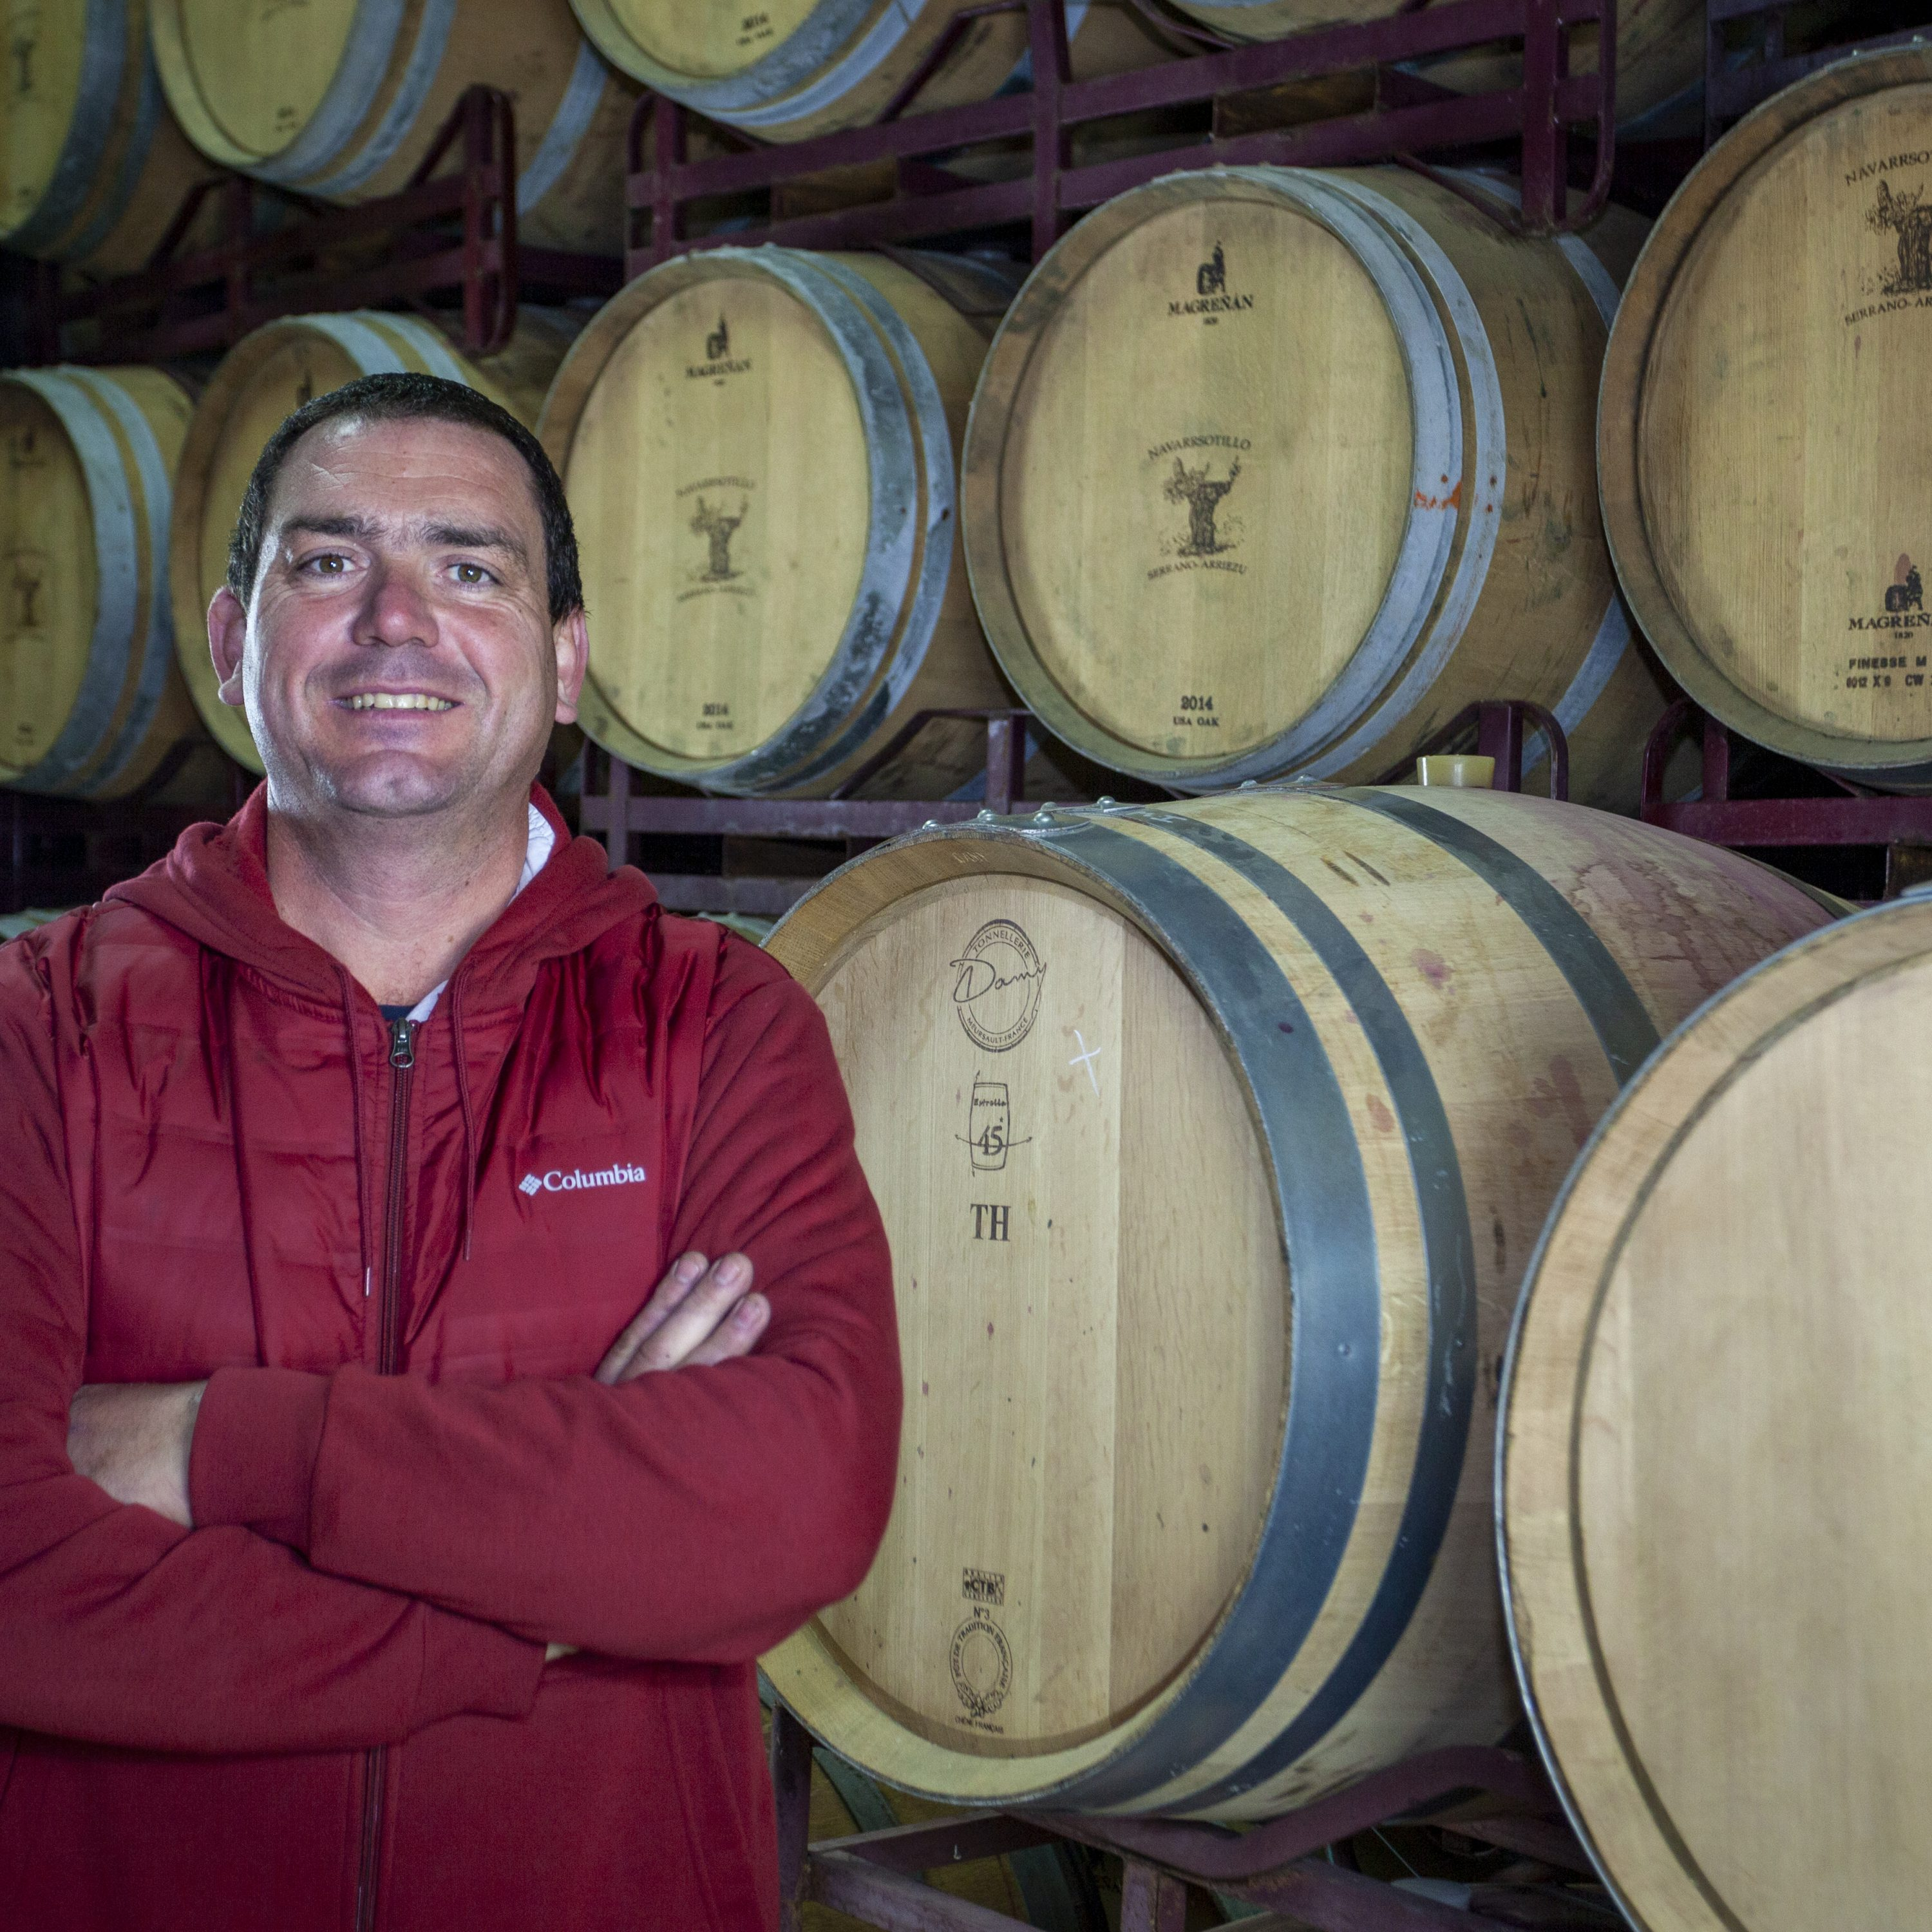 wine maker with wine barrels in background